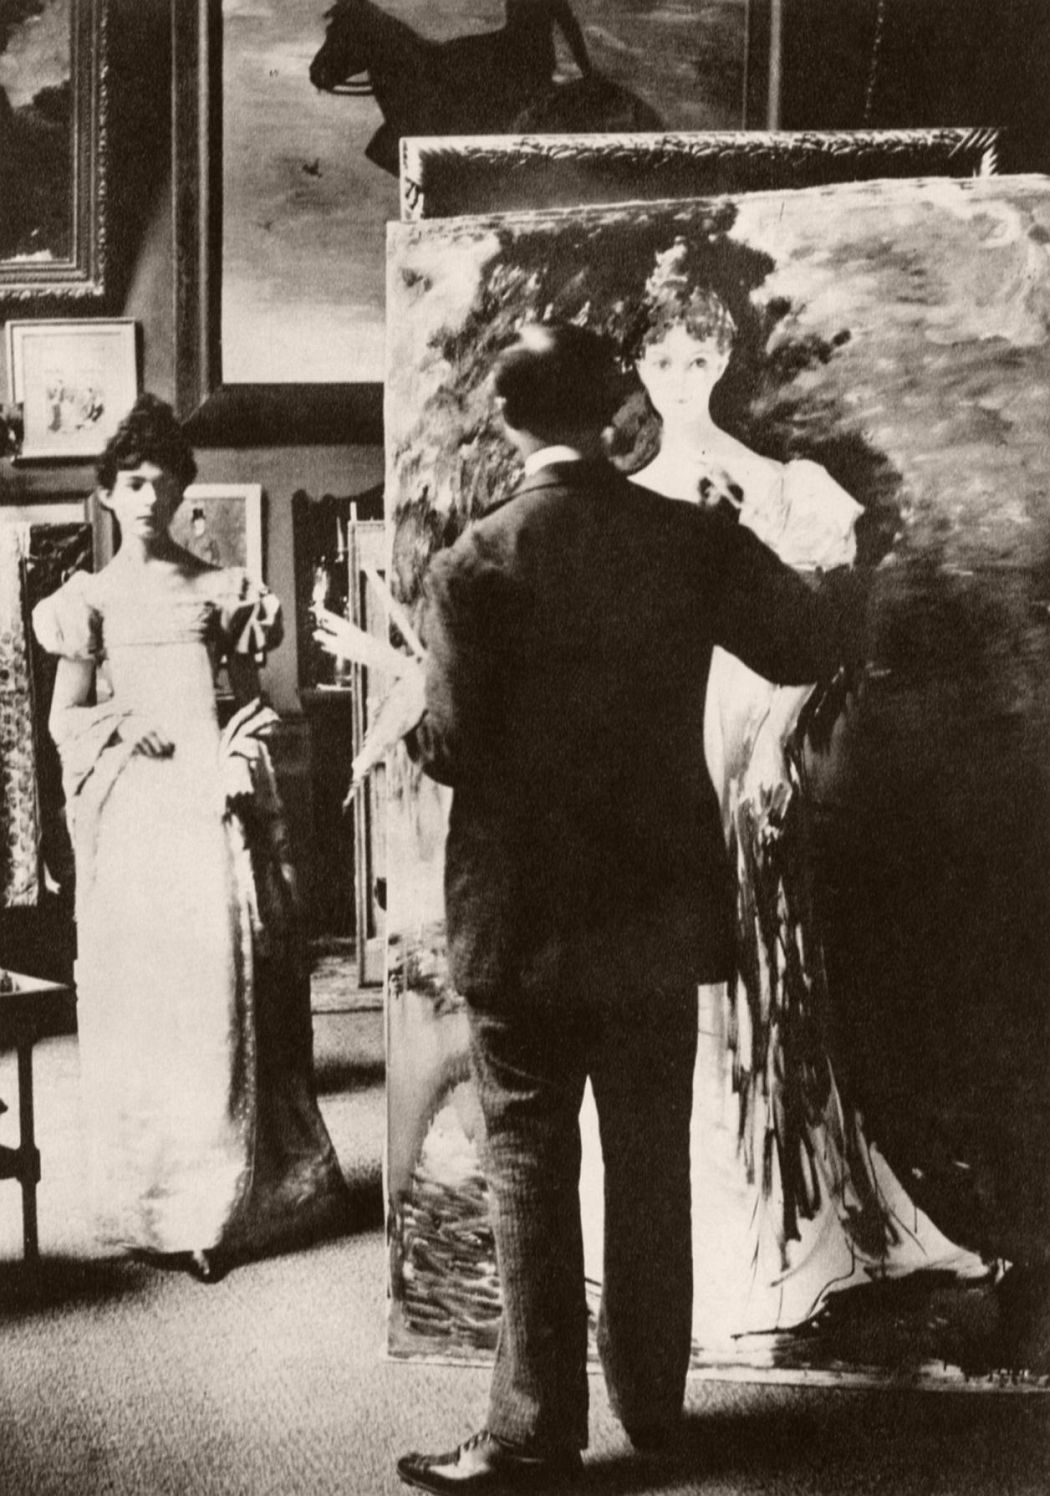 J.E. Blanche painting in his studio